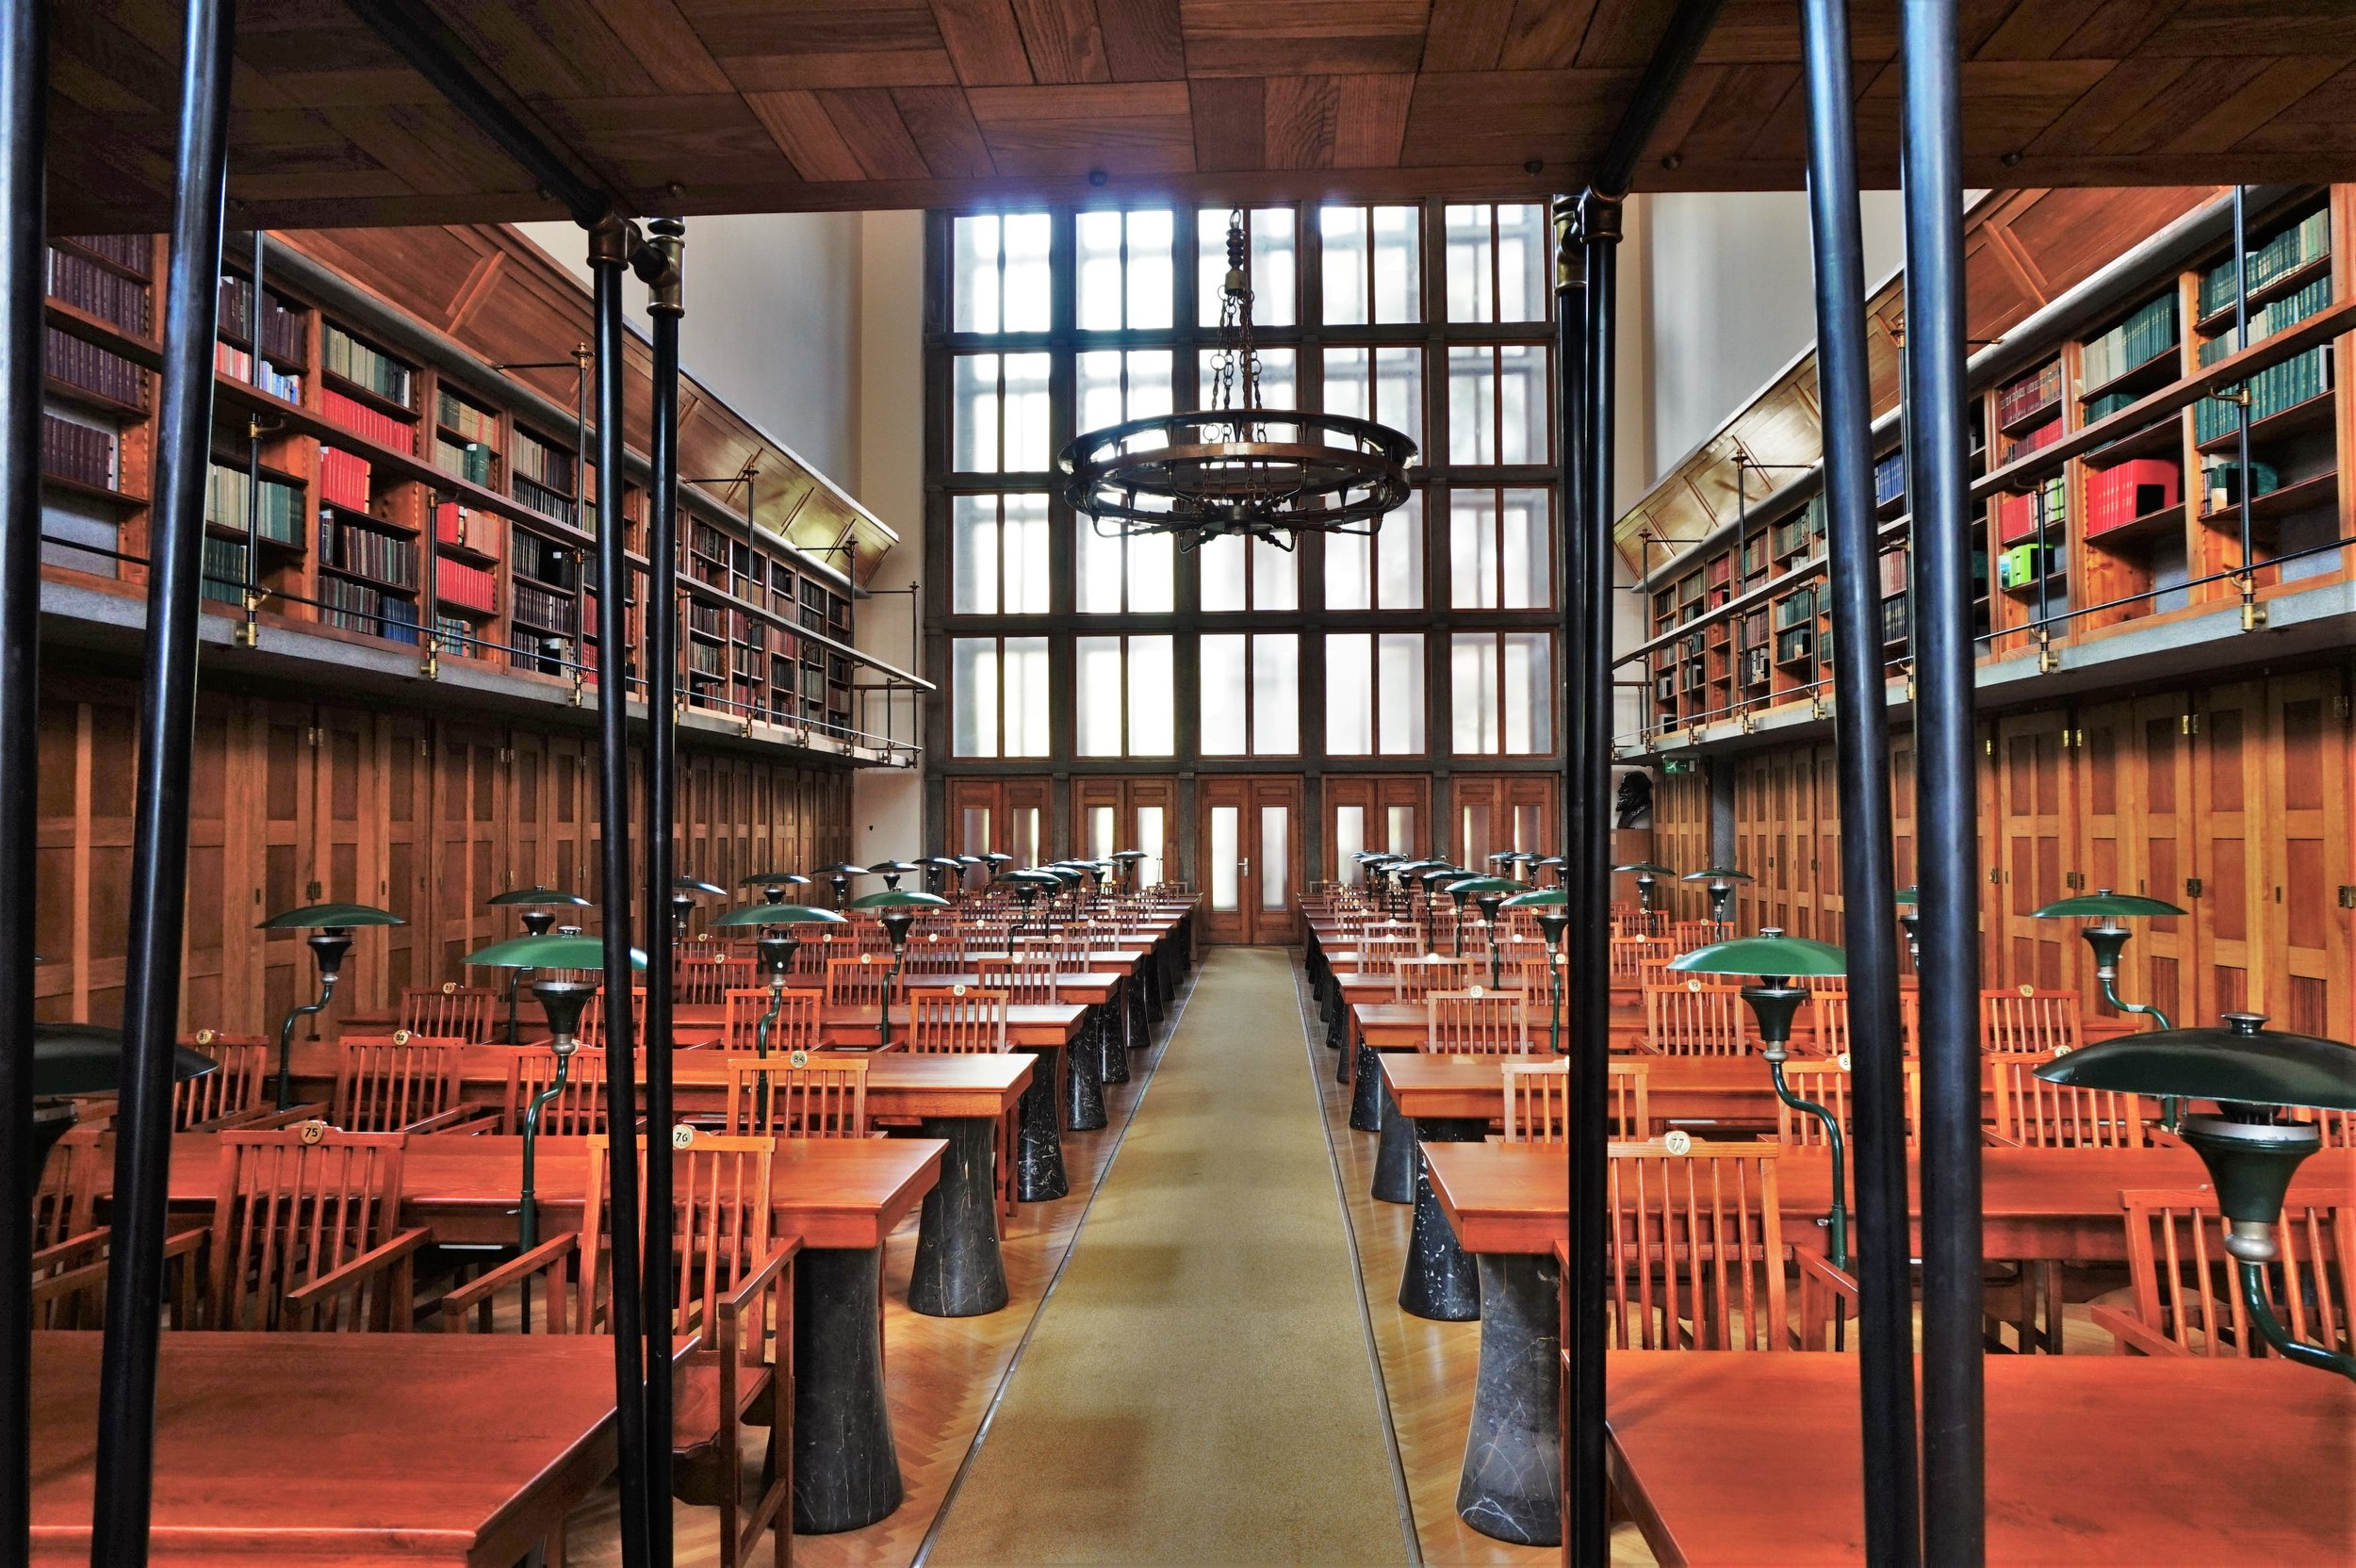 This is one of the to Ljubljana attractions, the university library reading room